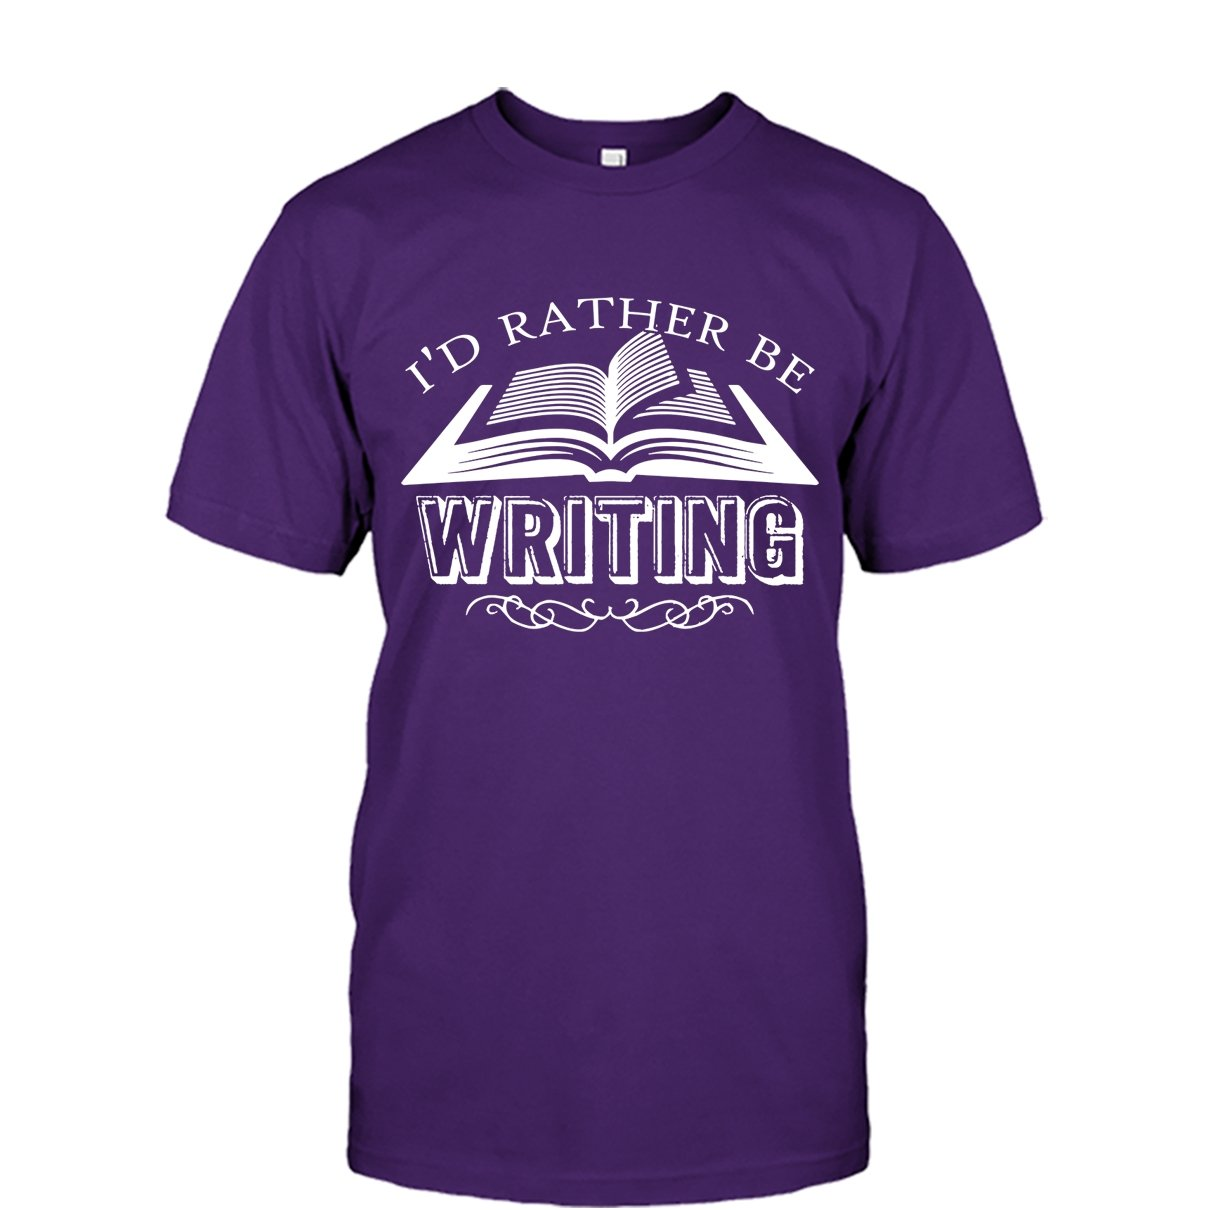 Id Rather Be Writing Tee Shirt Design for Men and Women Writer Cool Tshirt